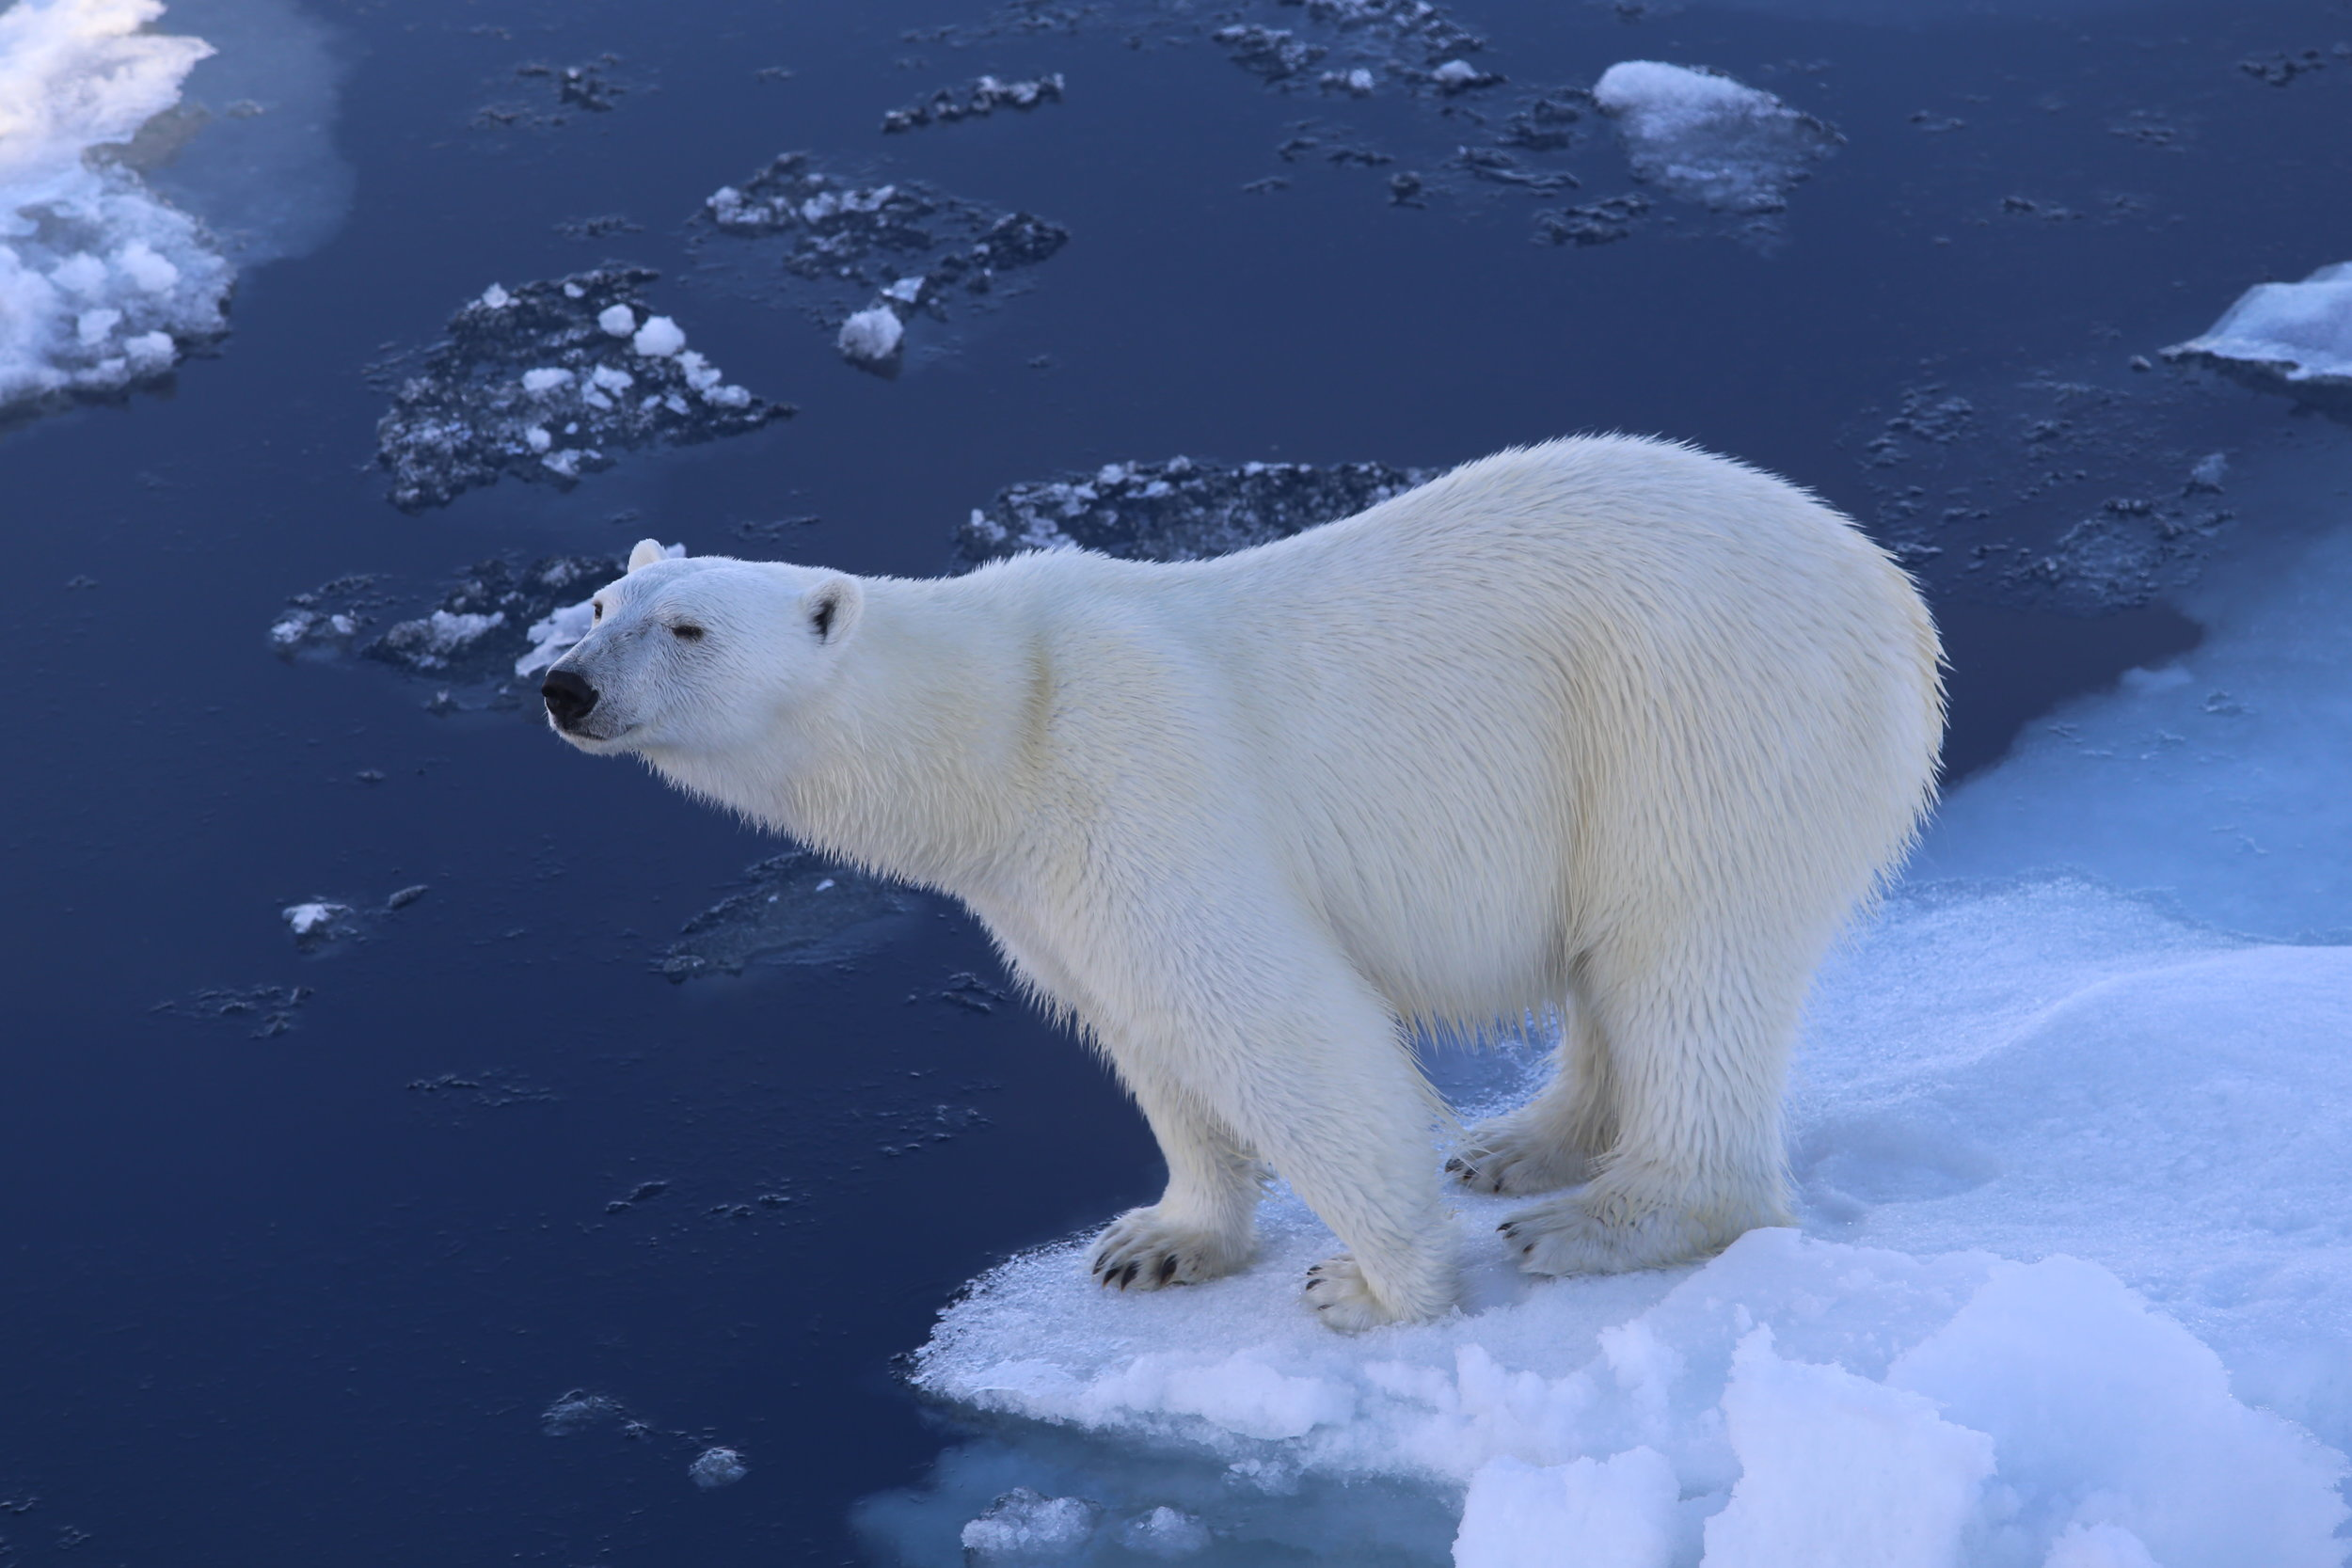 Lack of sea ice makes it difficult for bears to hunt seals. Photo: Magnus Andersen / Norwegian Polar Institute